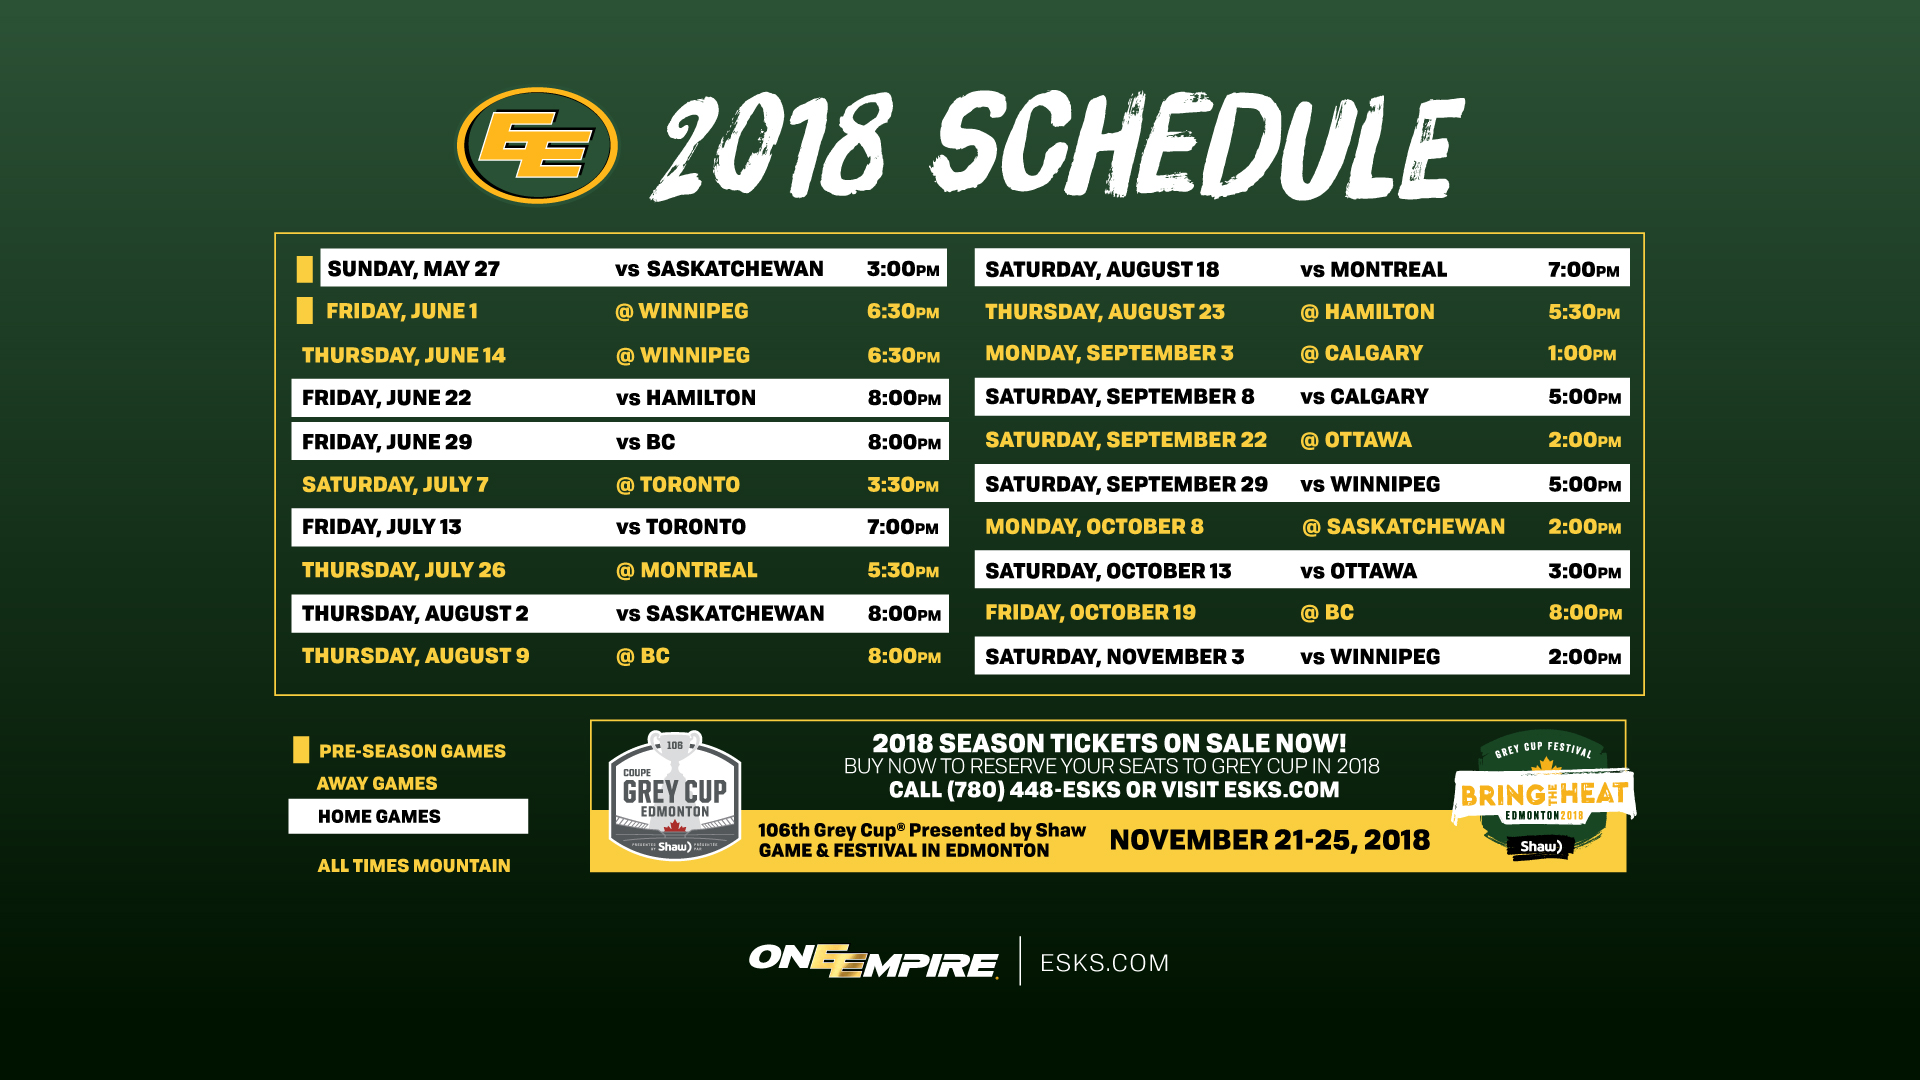 Telus Calendar Wallpaper : Wallpaper wednesday edmonton eskimos